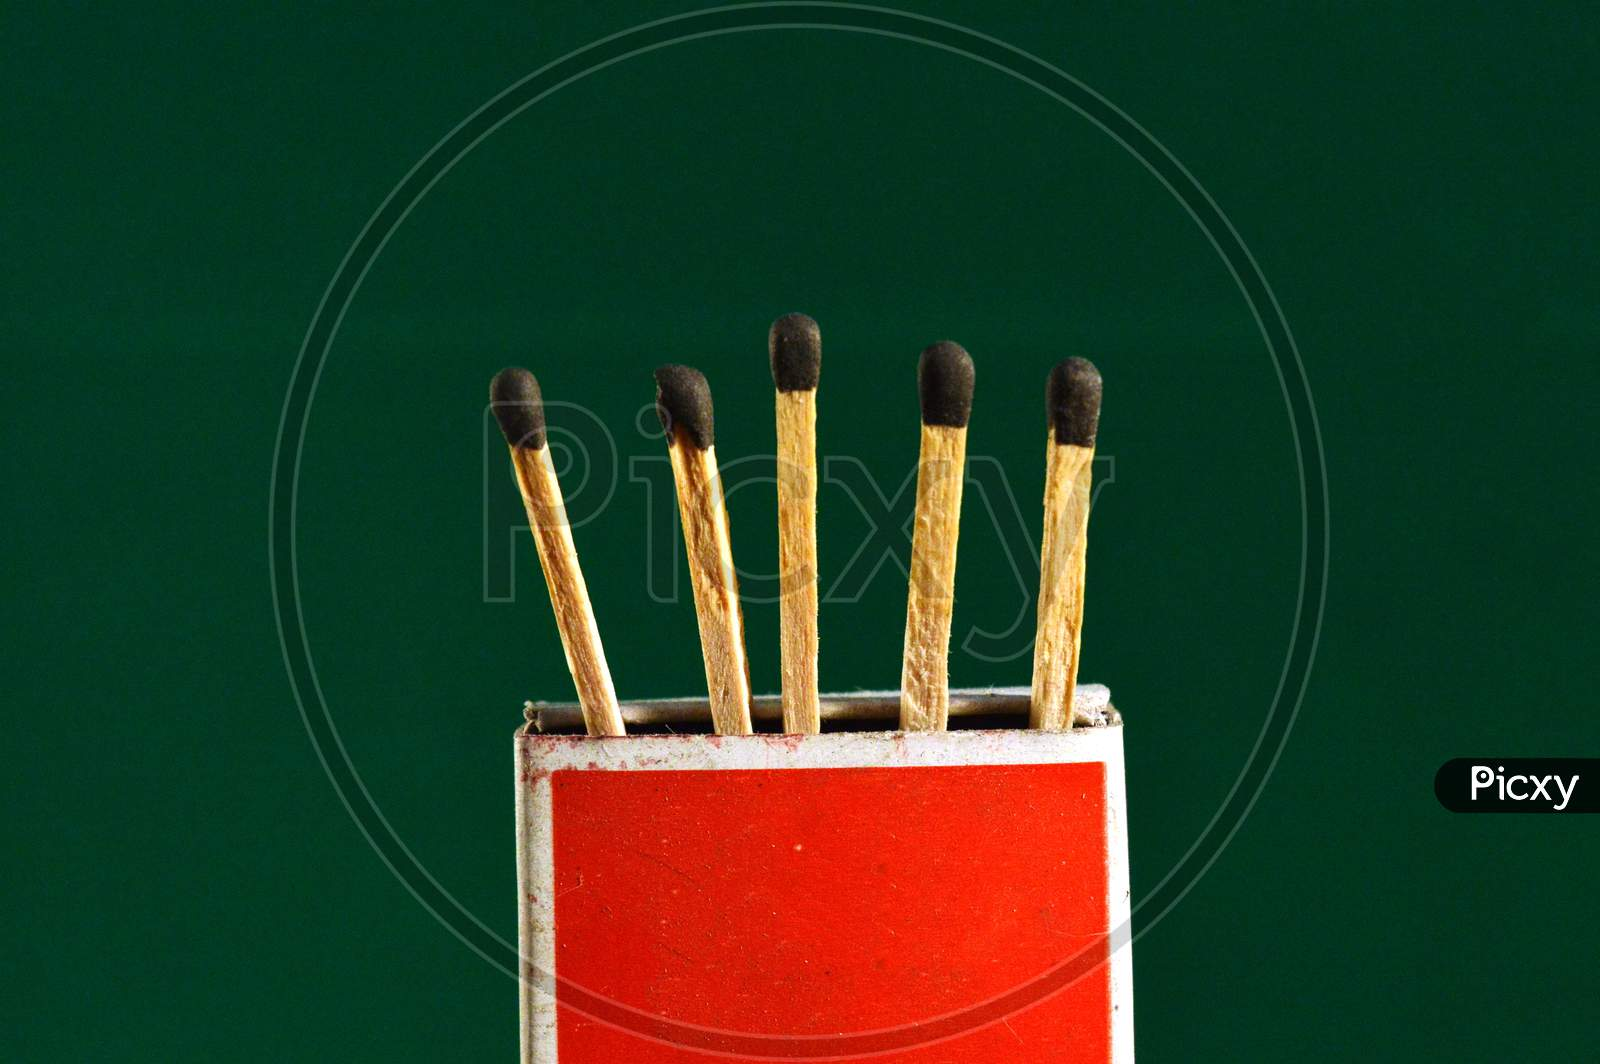 Wooden Matchsticks With Box Stand With Green Background